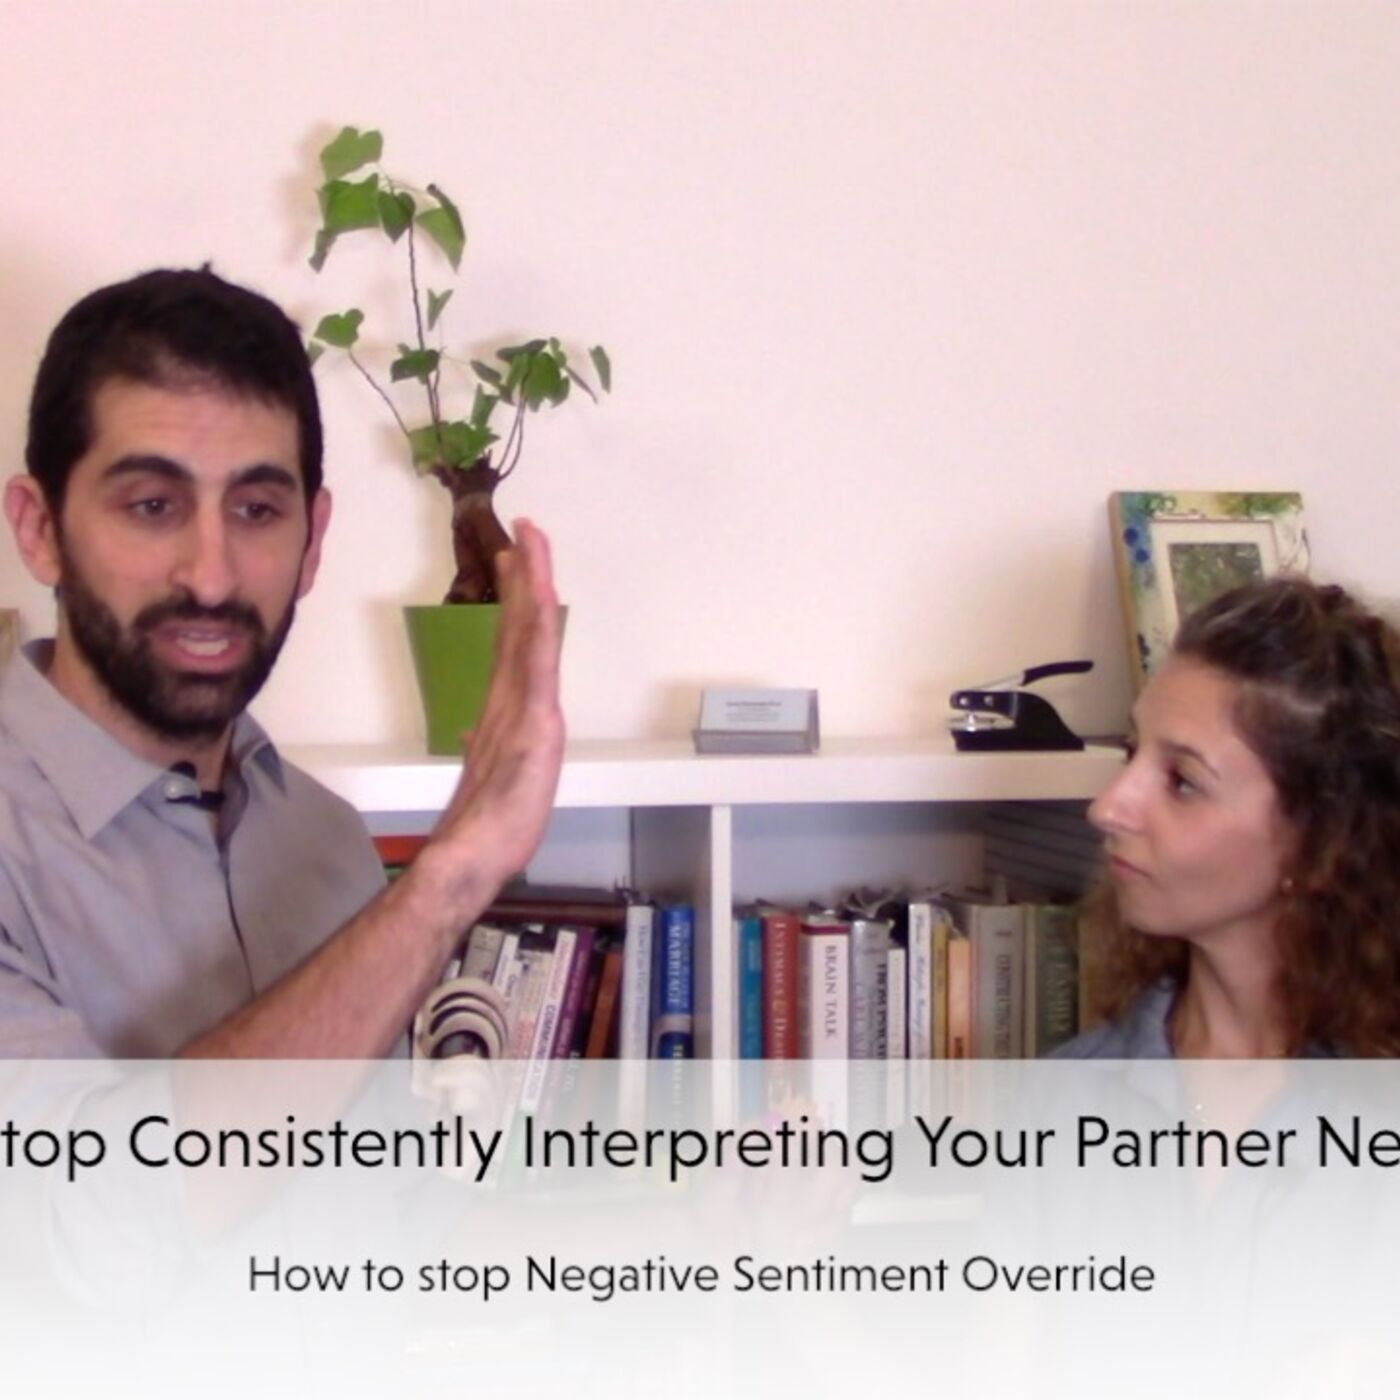 How to stop constantly interpreting your partner negatively?